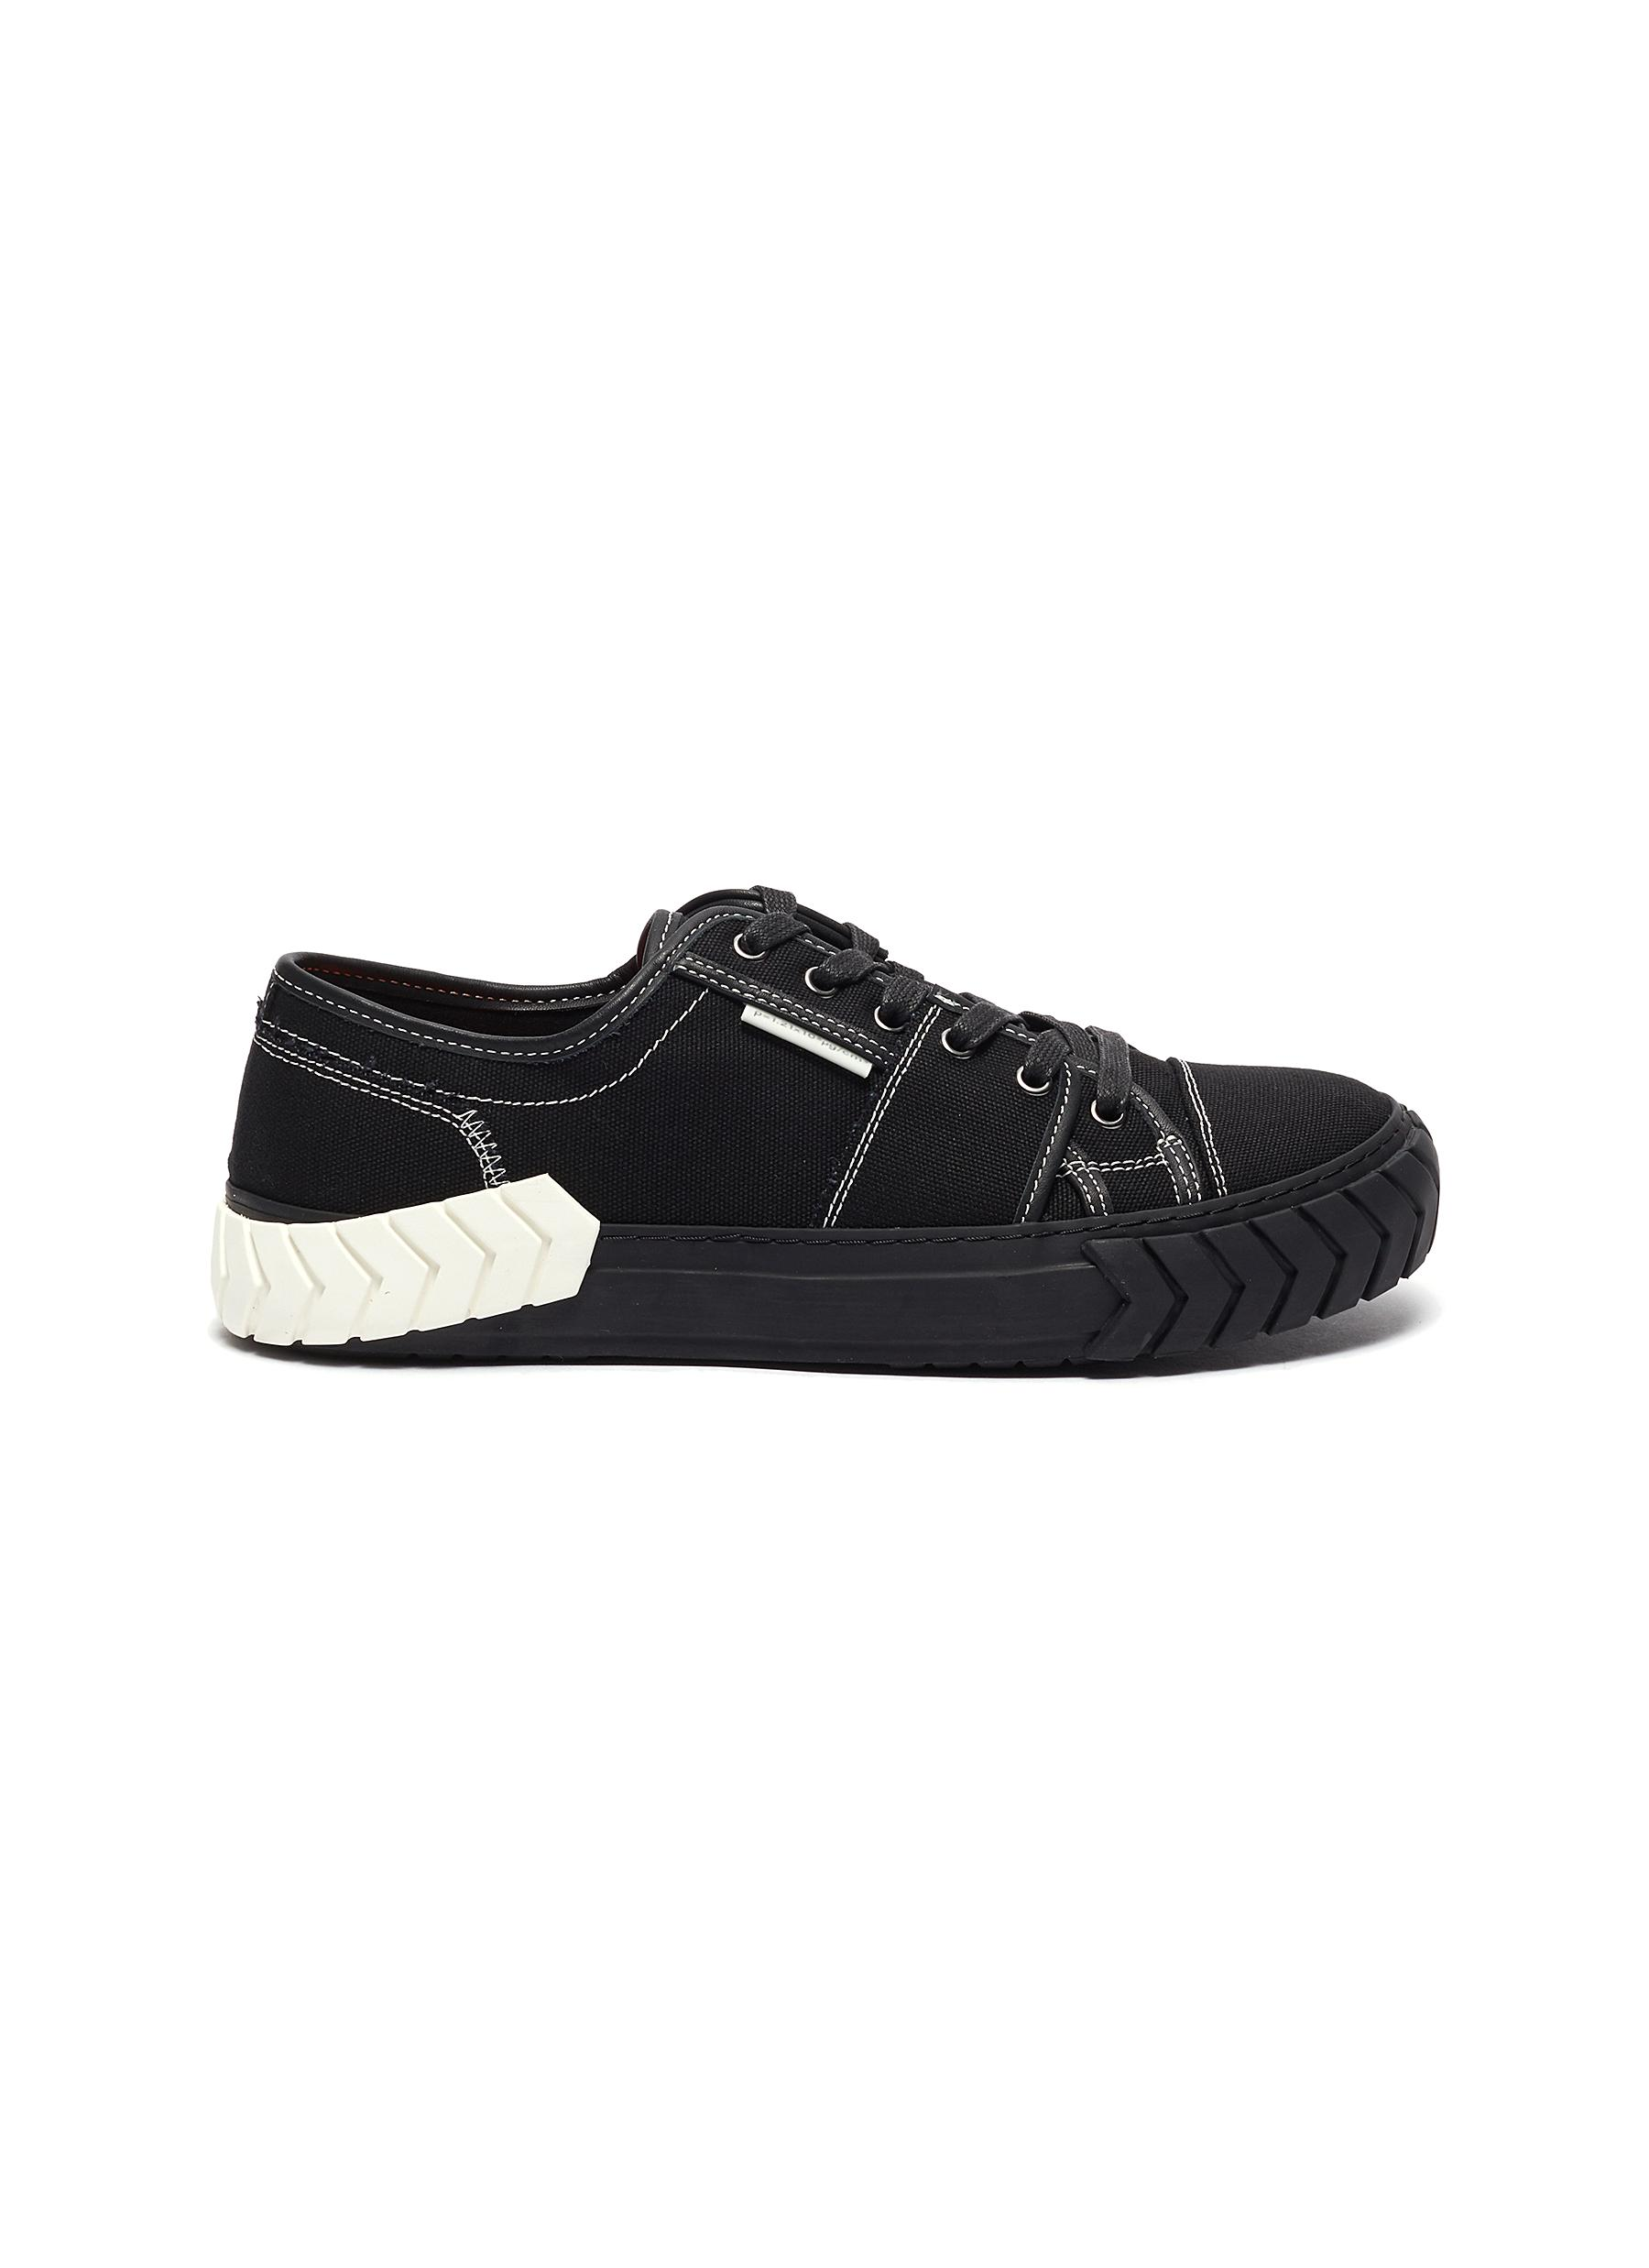 Both 'TYRES DECONSTRUCT' CONTRAST TOPSTITCH SNEAKERS